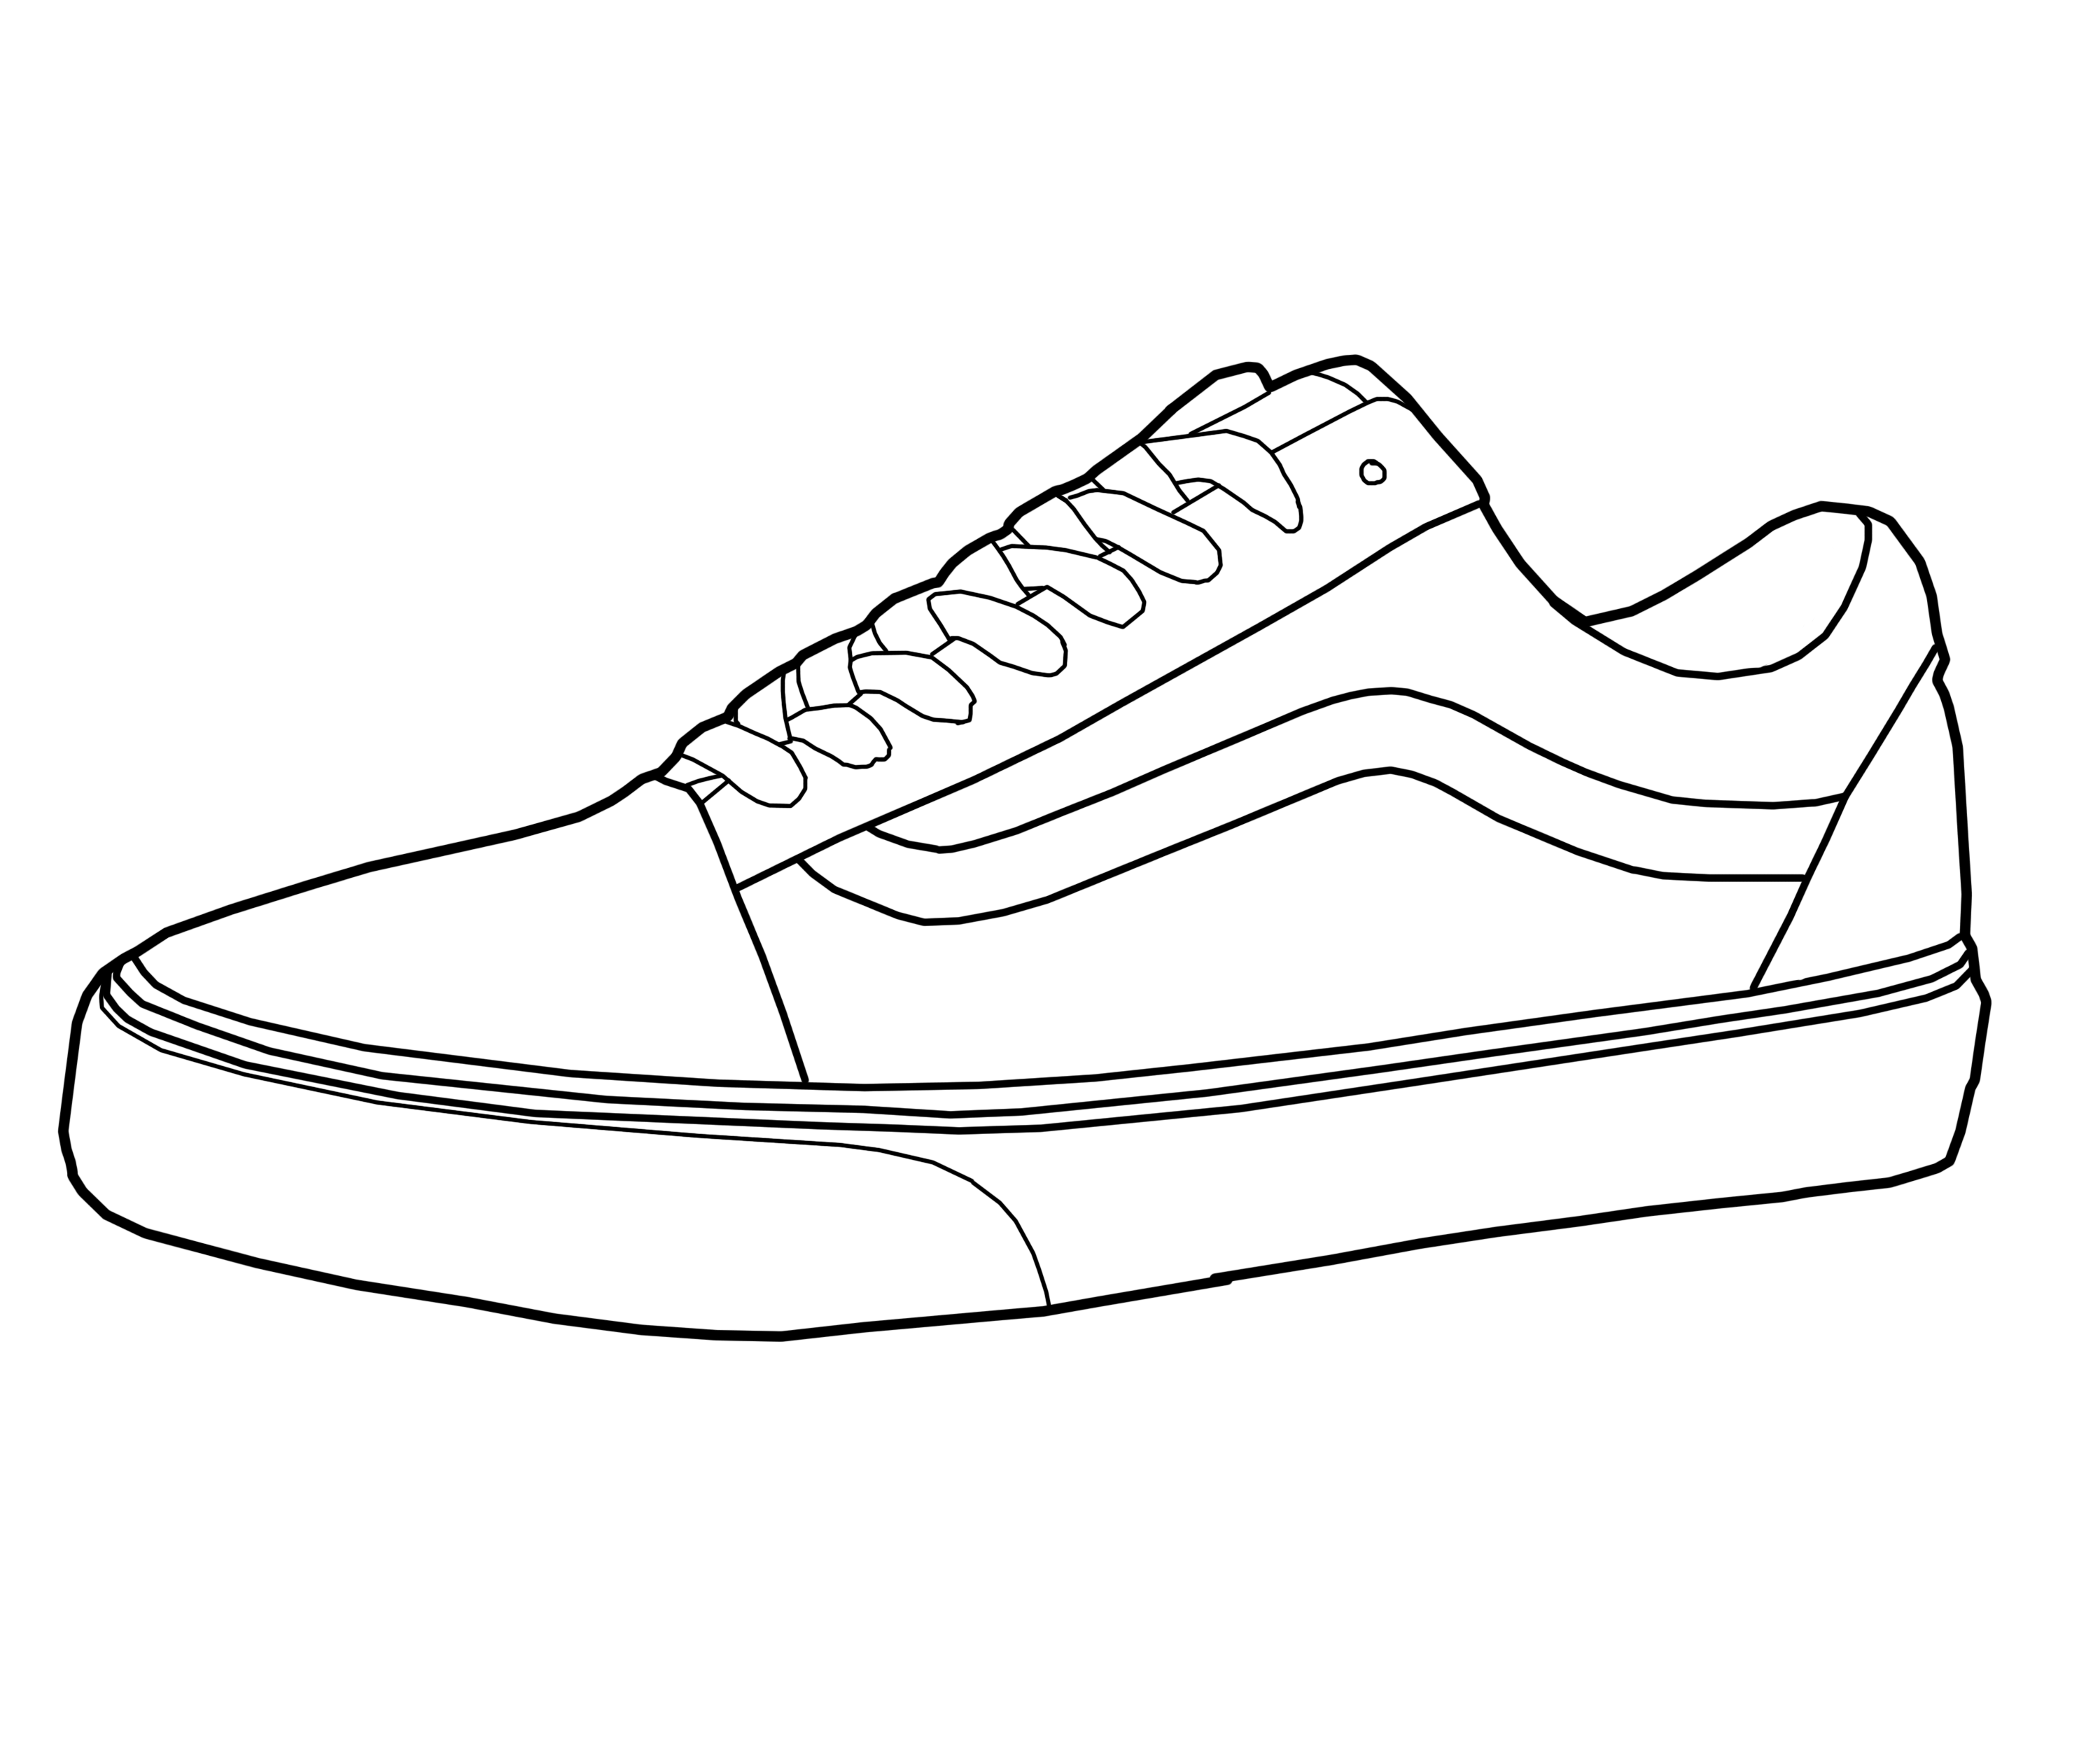 ed21f61effd8 Vans Shoe Drawings